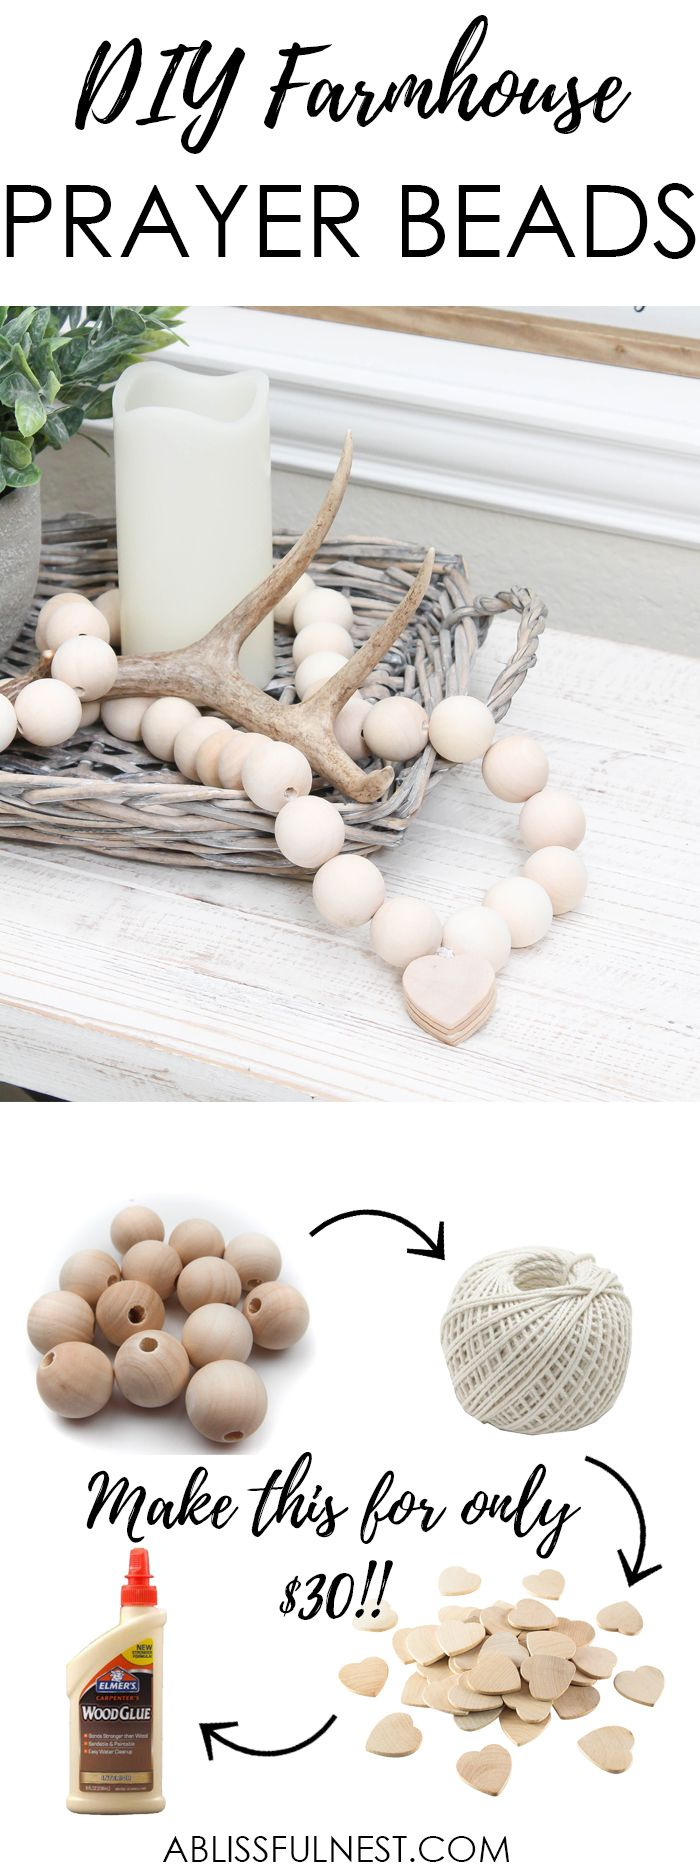 I can not believe how expensive prayer beads normally are! This DIY farmhouse wood prayer beads tutorial is so easy to make and only cost $30. What an amazing and easy DIY Farmhouse decor project! See more on http://ablissfulnest.com/ #farmhousedecor #farmhousestyle